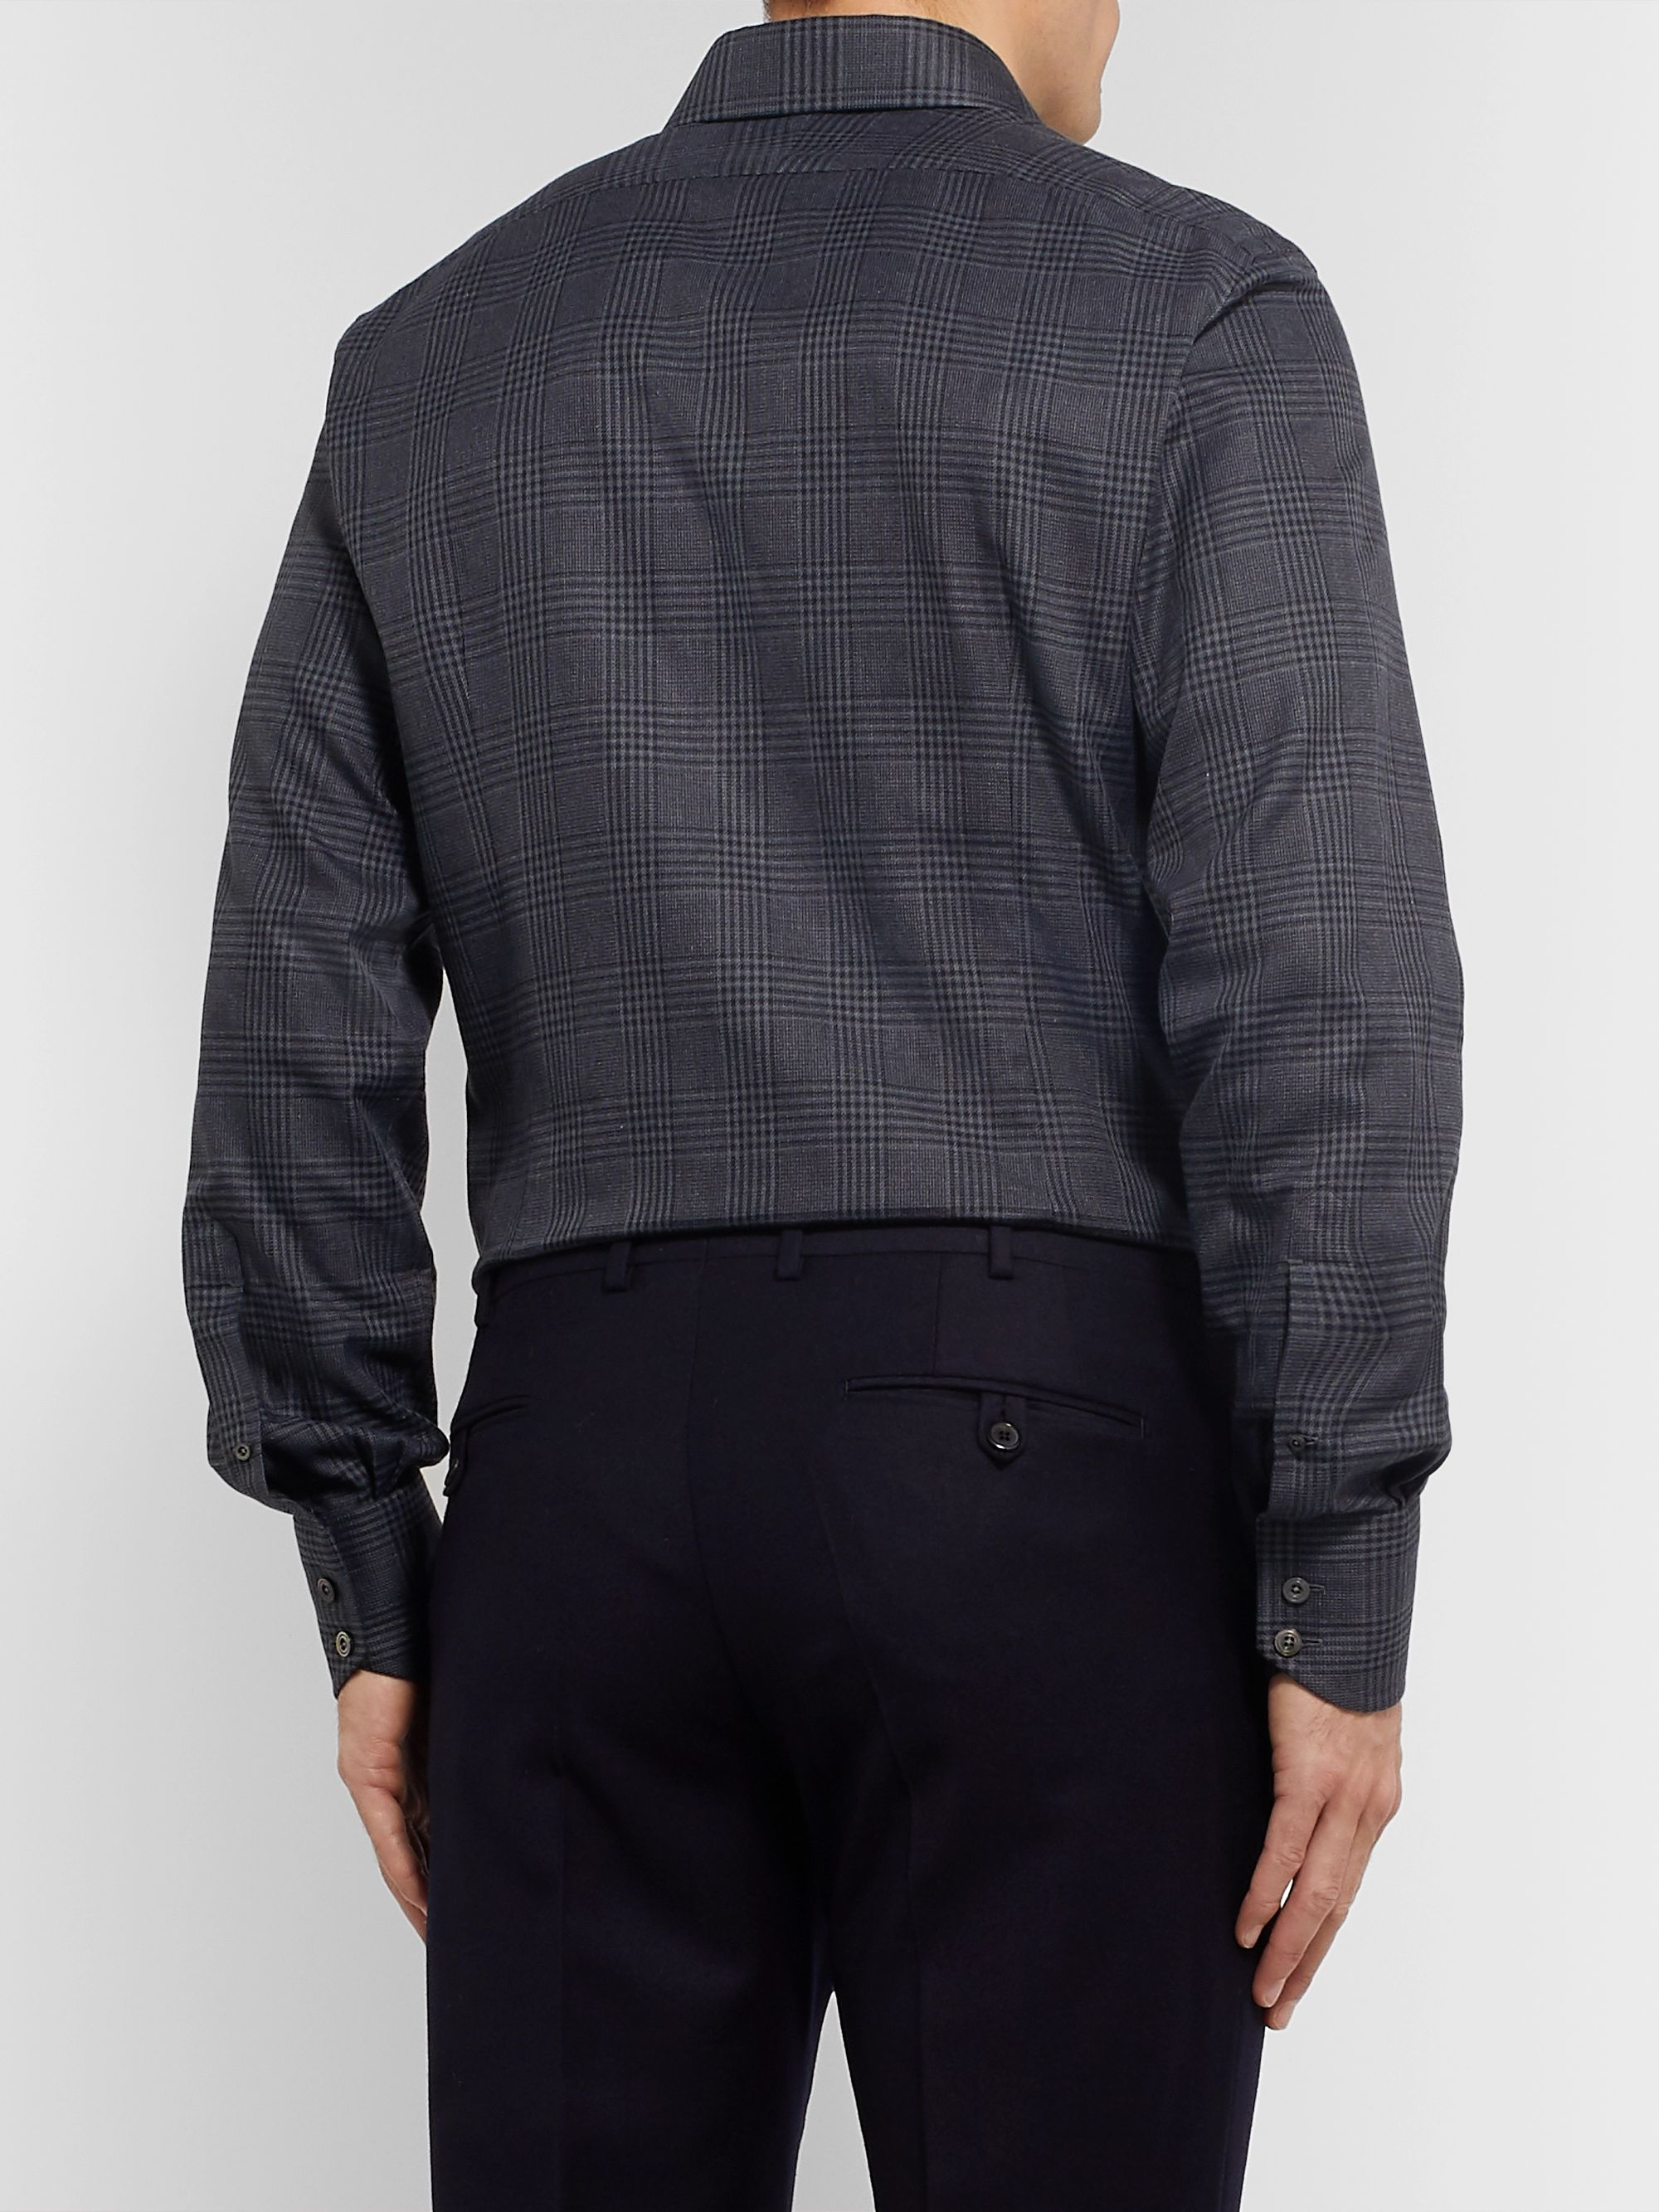 TOM FORD Grey Prince of Wales Checked Cotton Shirt